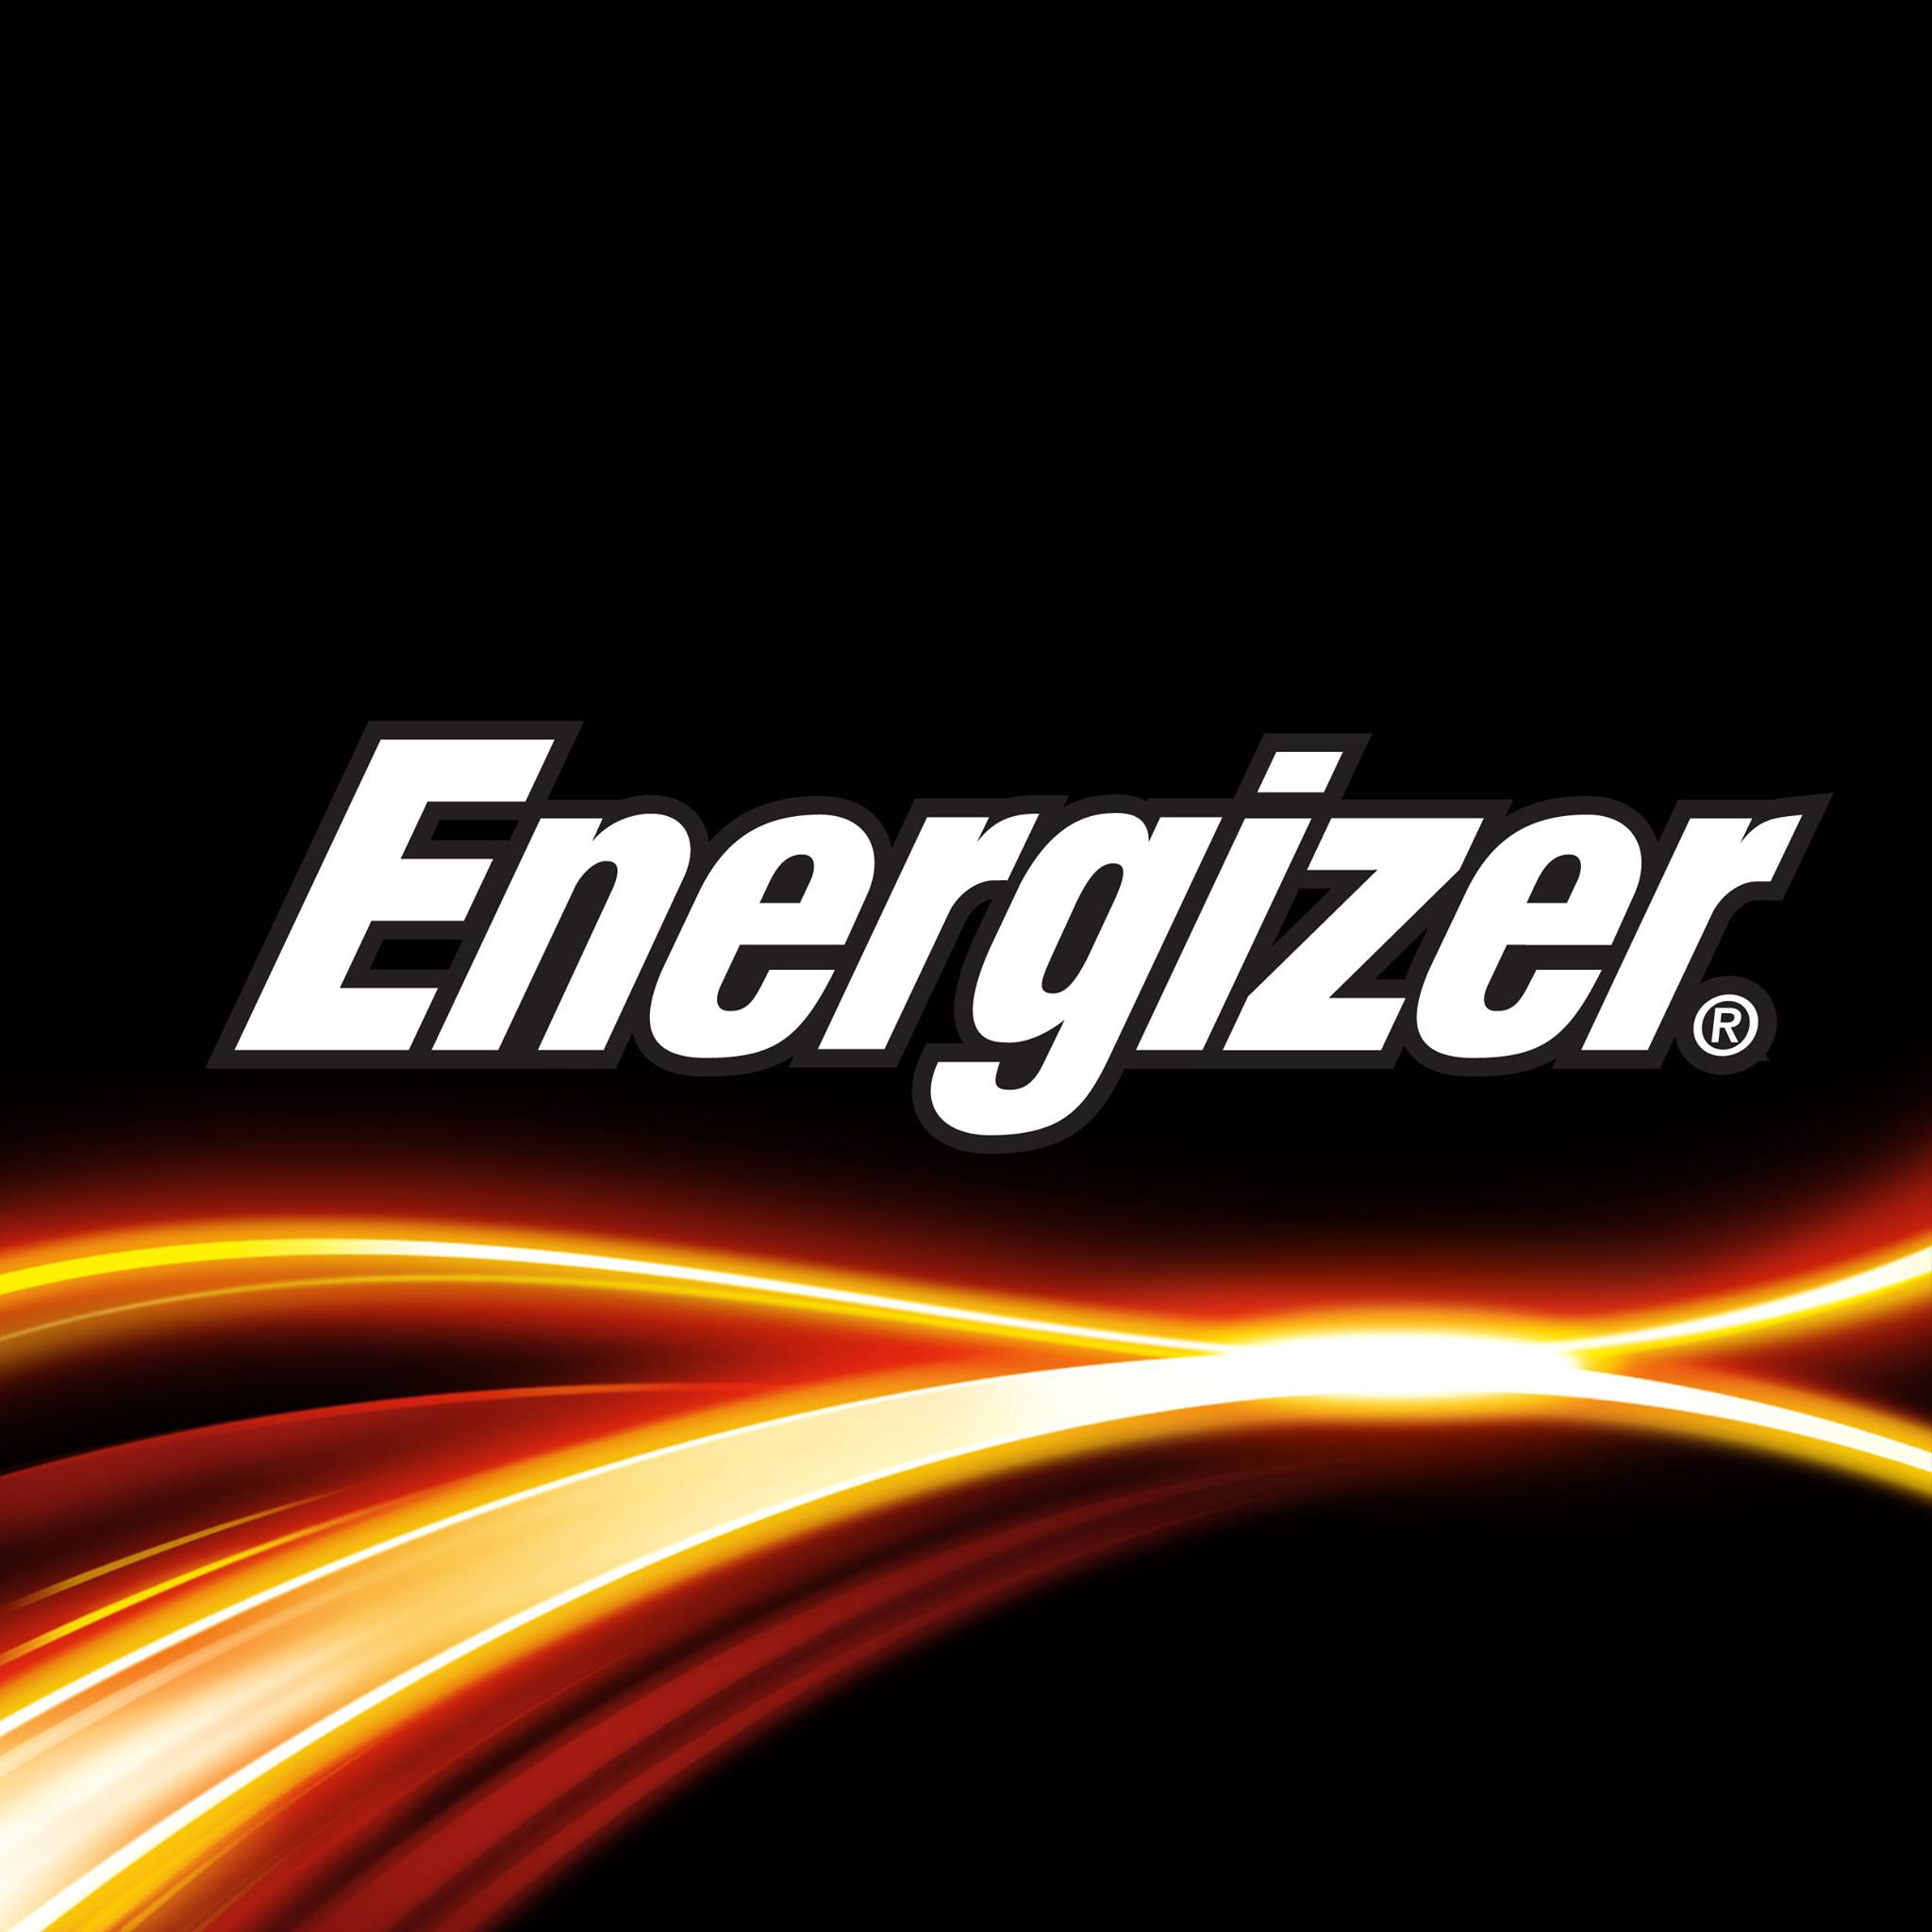 1ea4ba331a Energizer Holdings, Inc. announces pricing of $500 million of senior notes